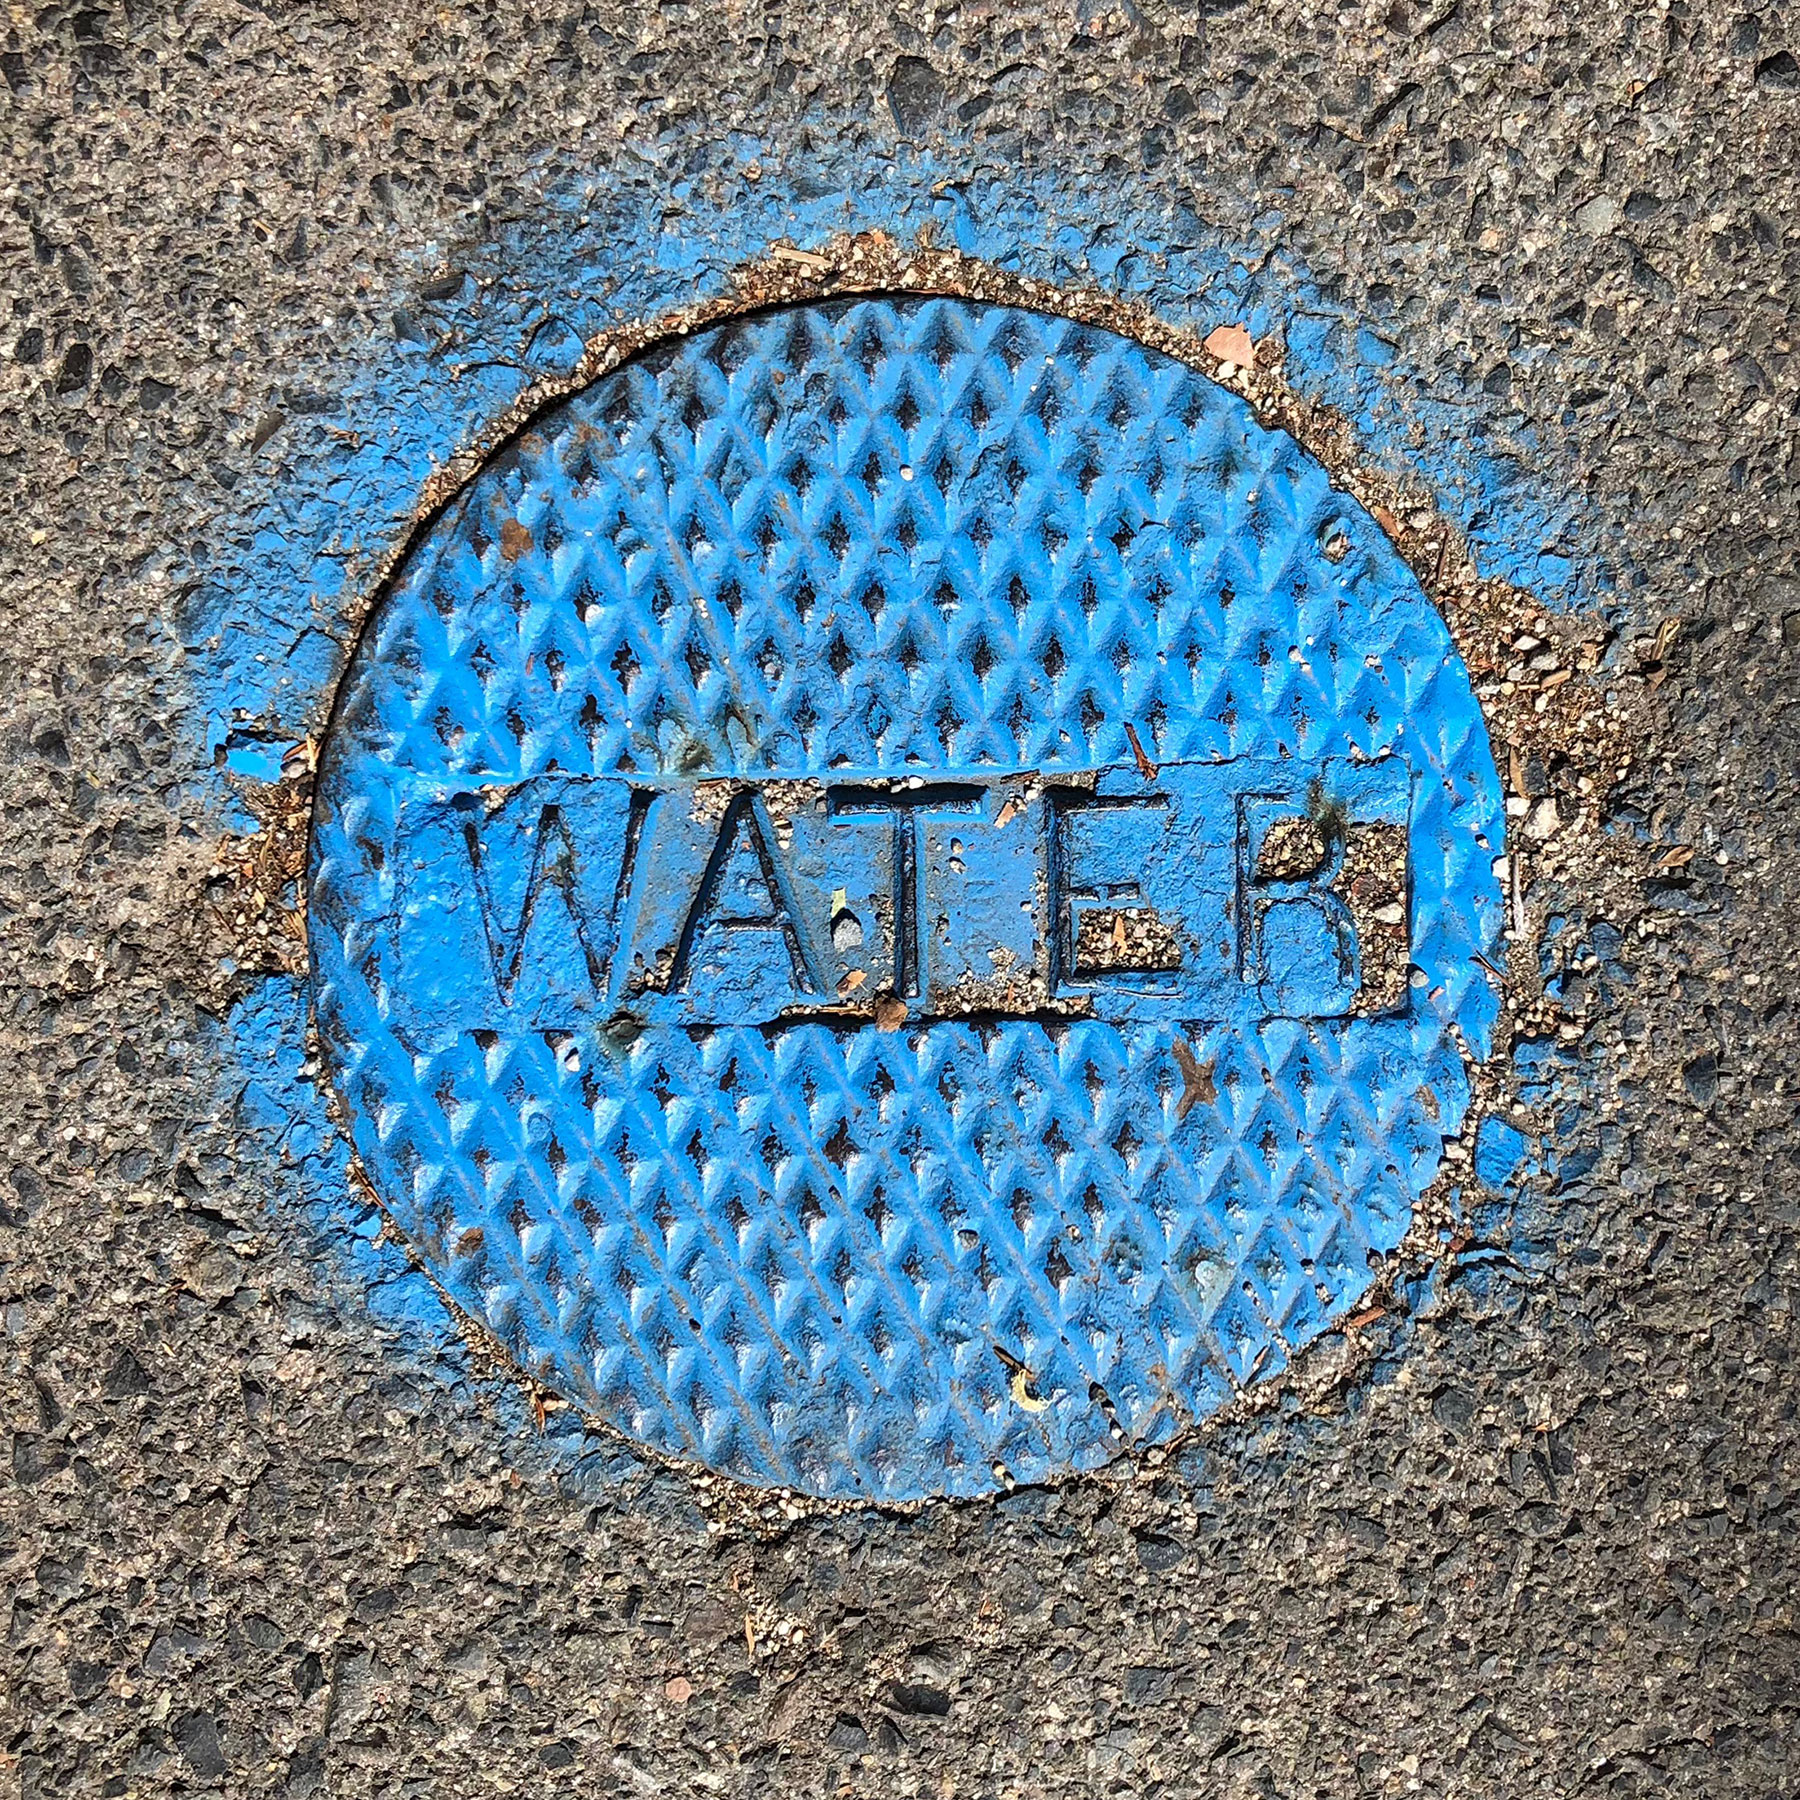 Blue water utility cover